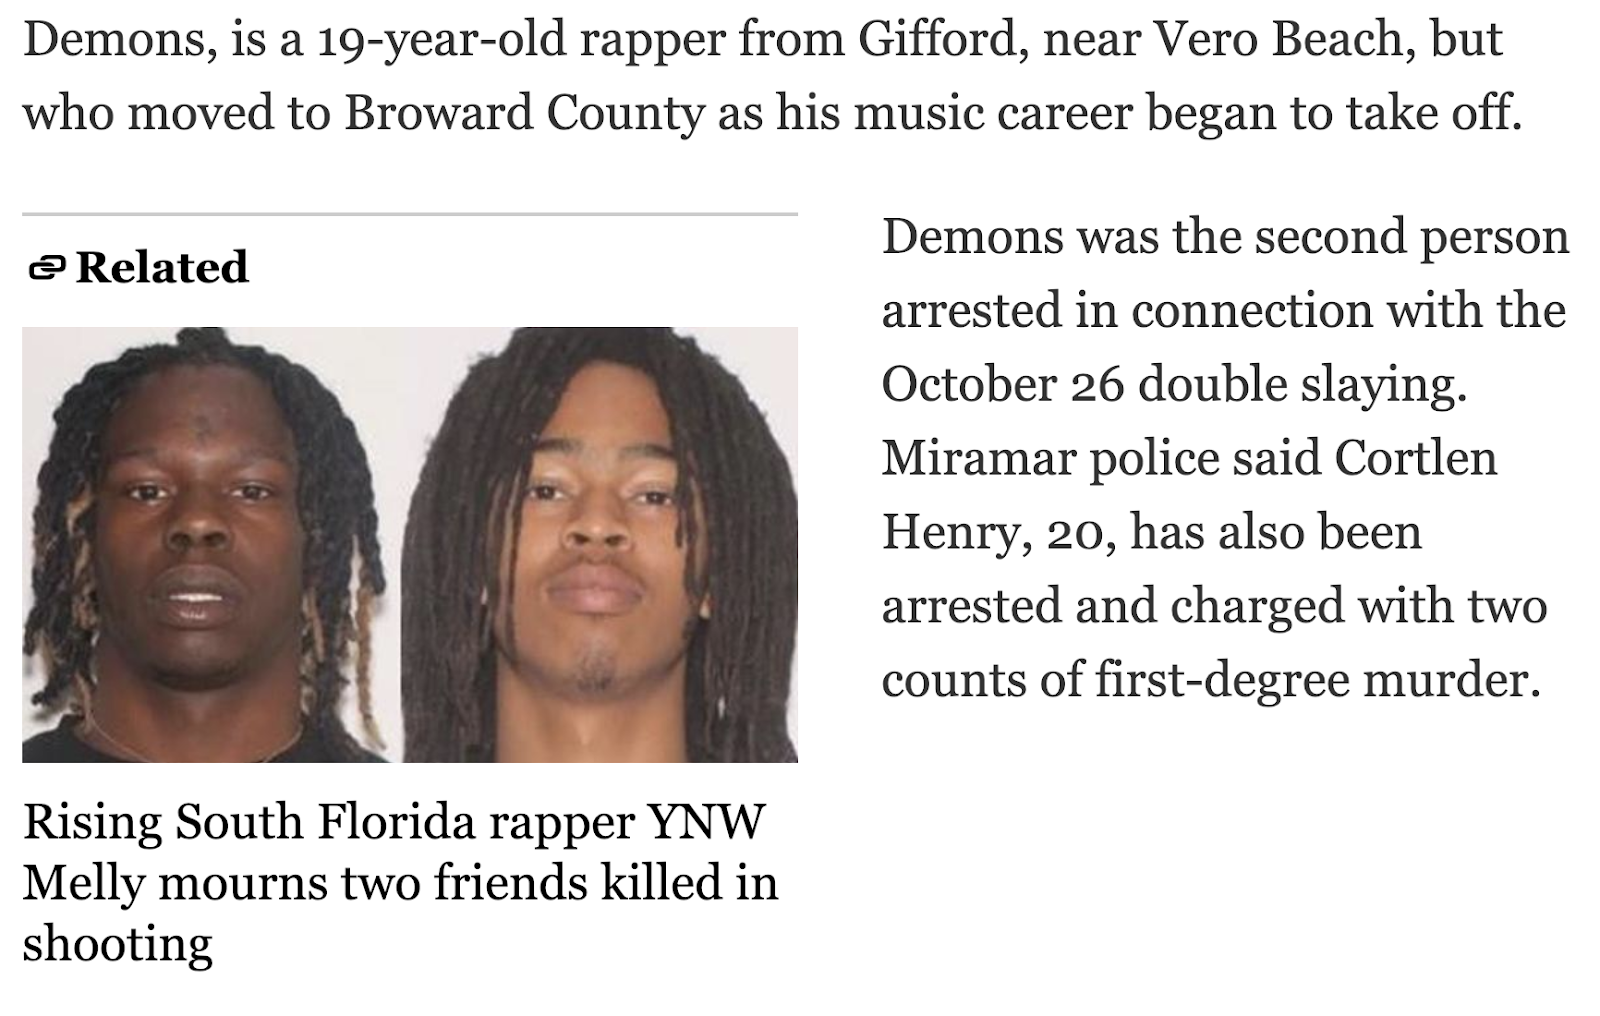 44 74 187 193 213 | YNW Melly, Florida rapper, charged with